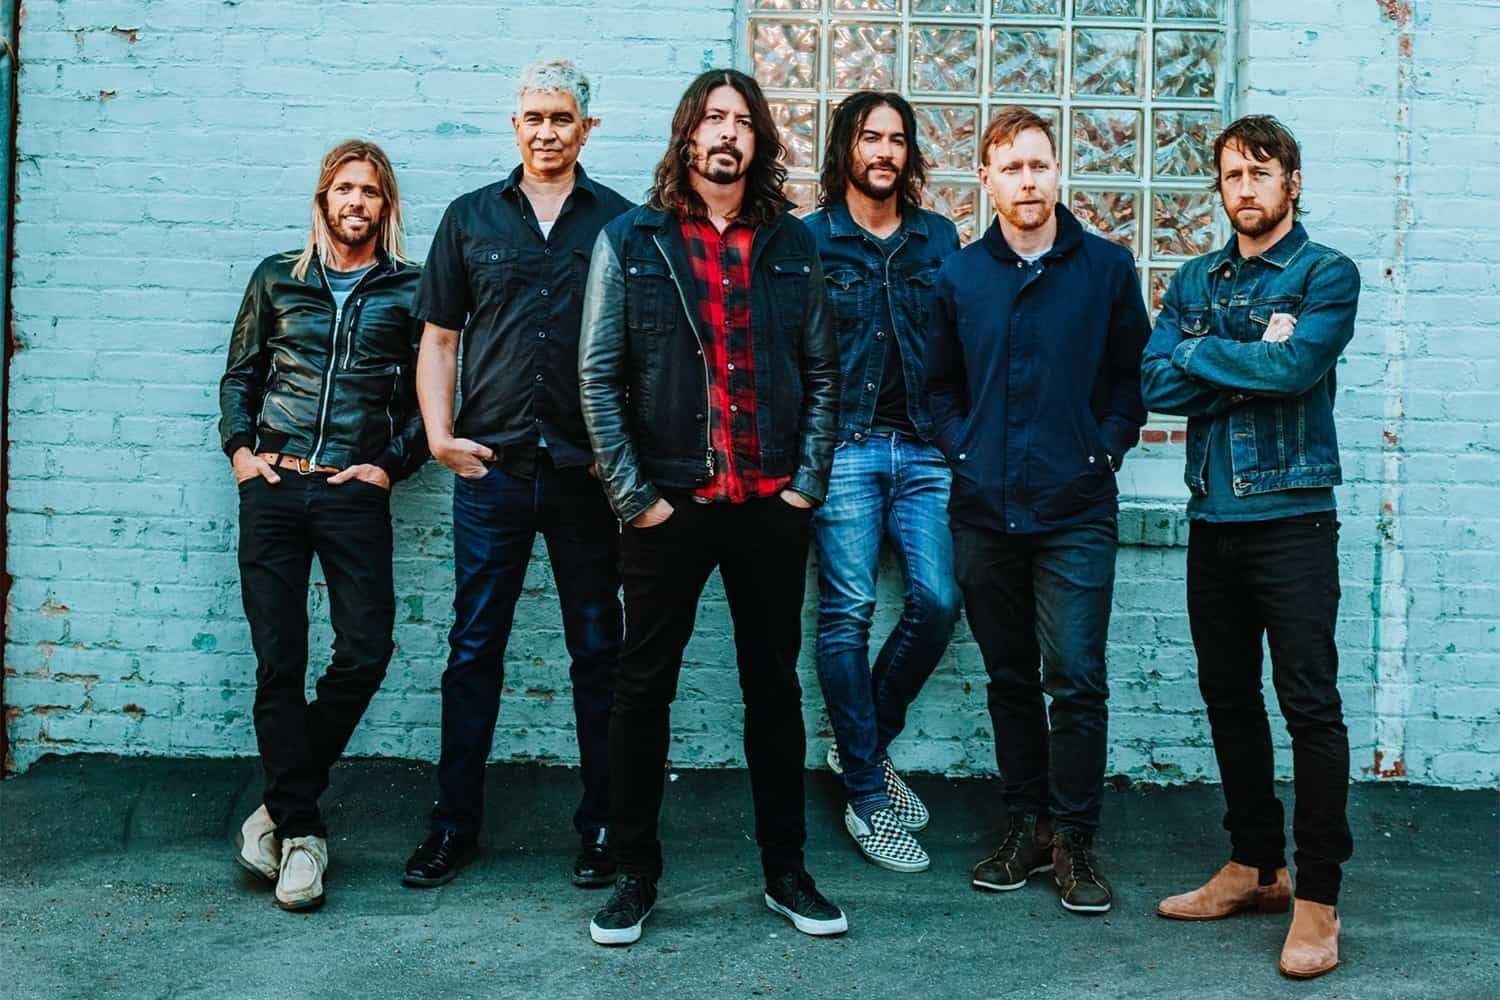 Foo Fighters are headlining Glasgow Summer Sessions in 2019